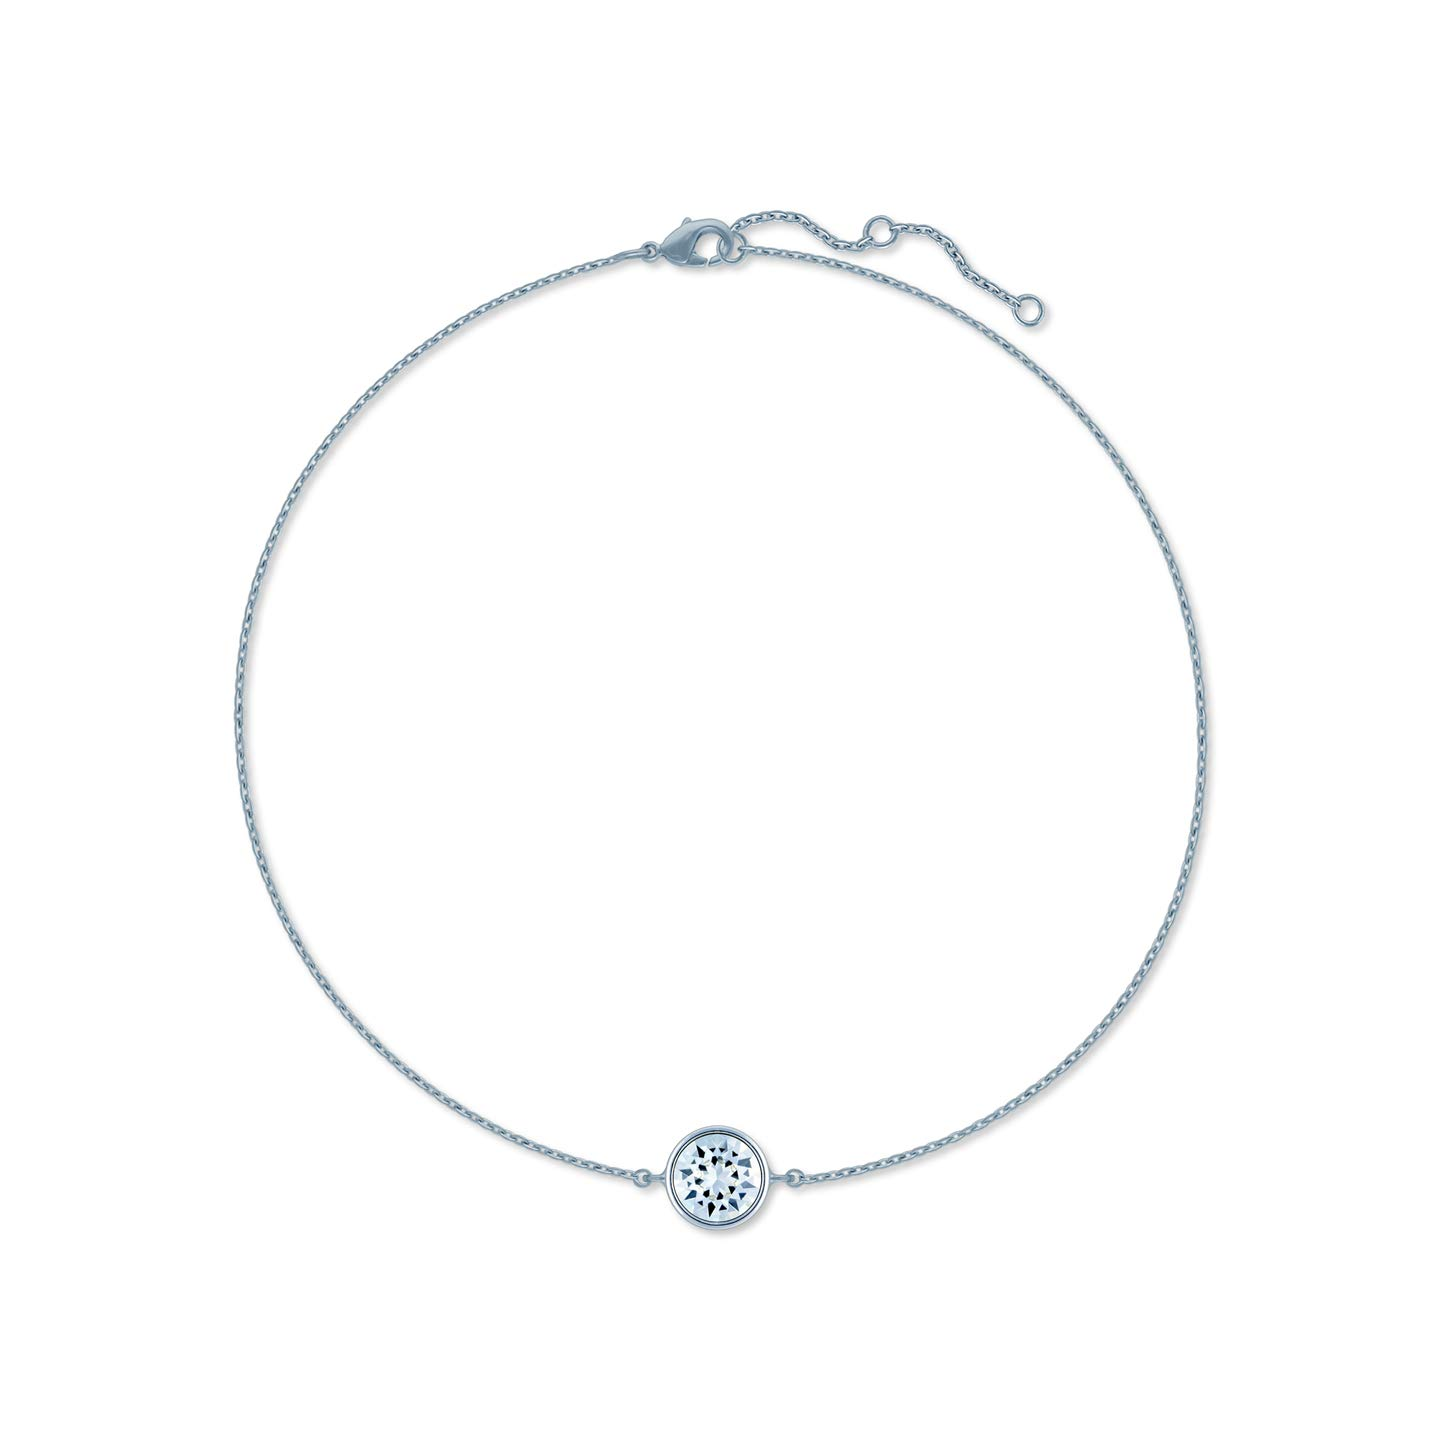 Ed Heart Chain Bracelet with White Clear Round Crystals from Swarovski Silver Toned Rhodium Plated